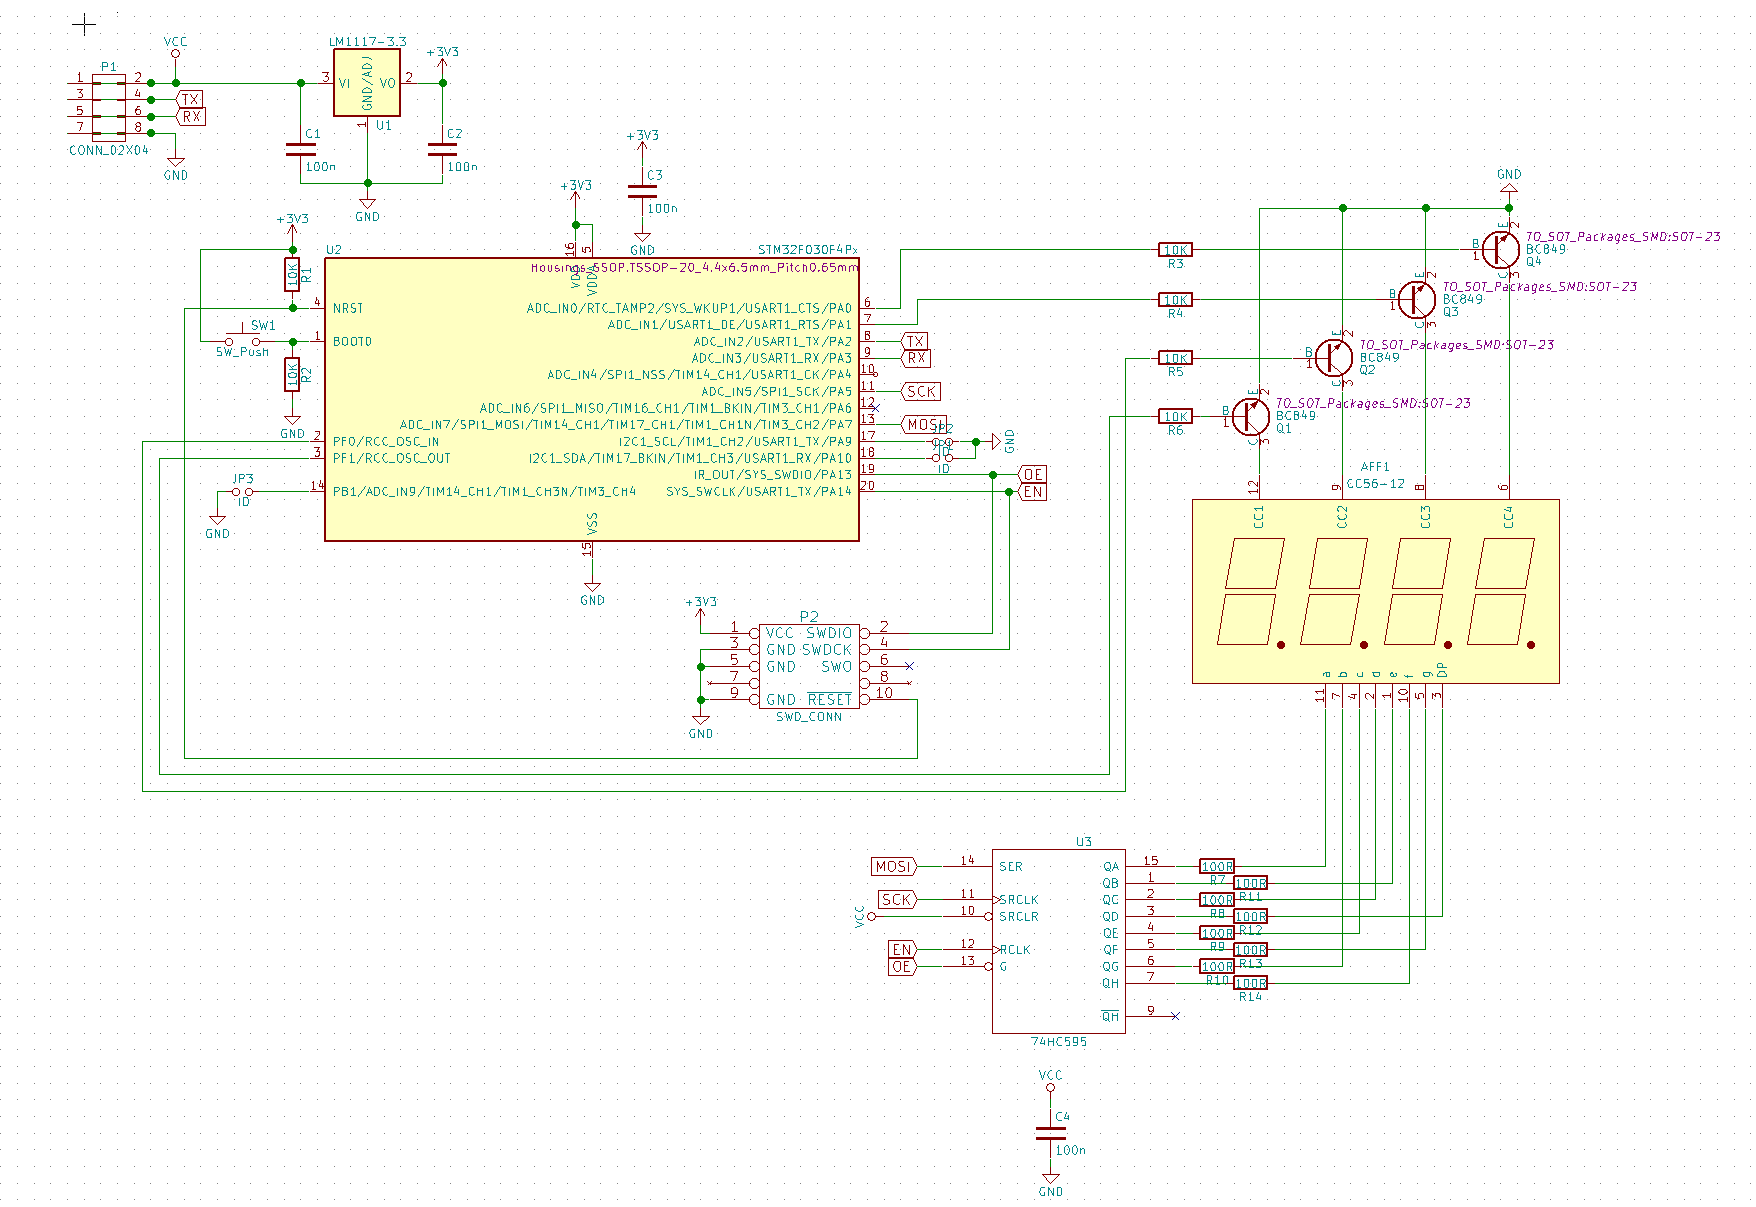 Yassd Chainable Uart Controlled 7 Segment Displays Jaeblog Display Wiring Diagram The 8 Resistors Of 100 Ohm Close To 74hc595 Limit Current For With Red Used Is A Bit Less Then 10ma